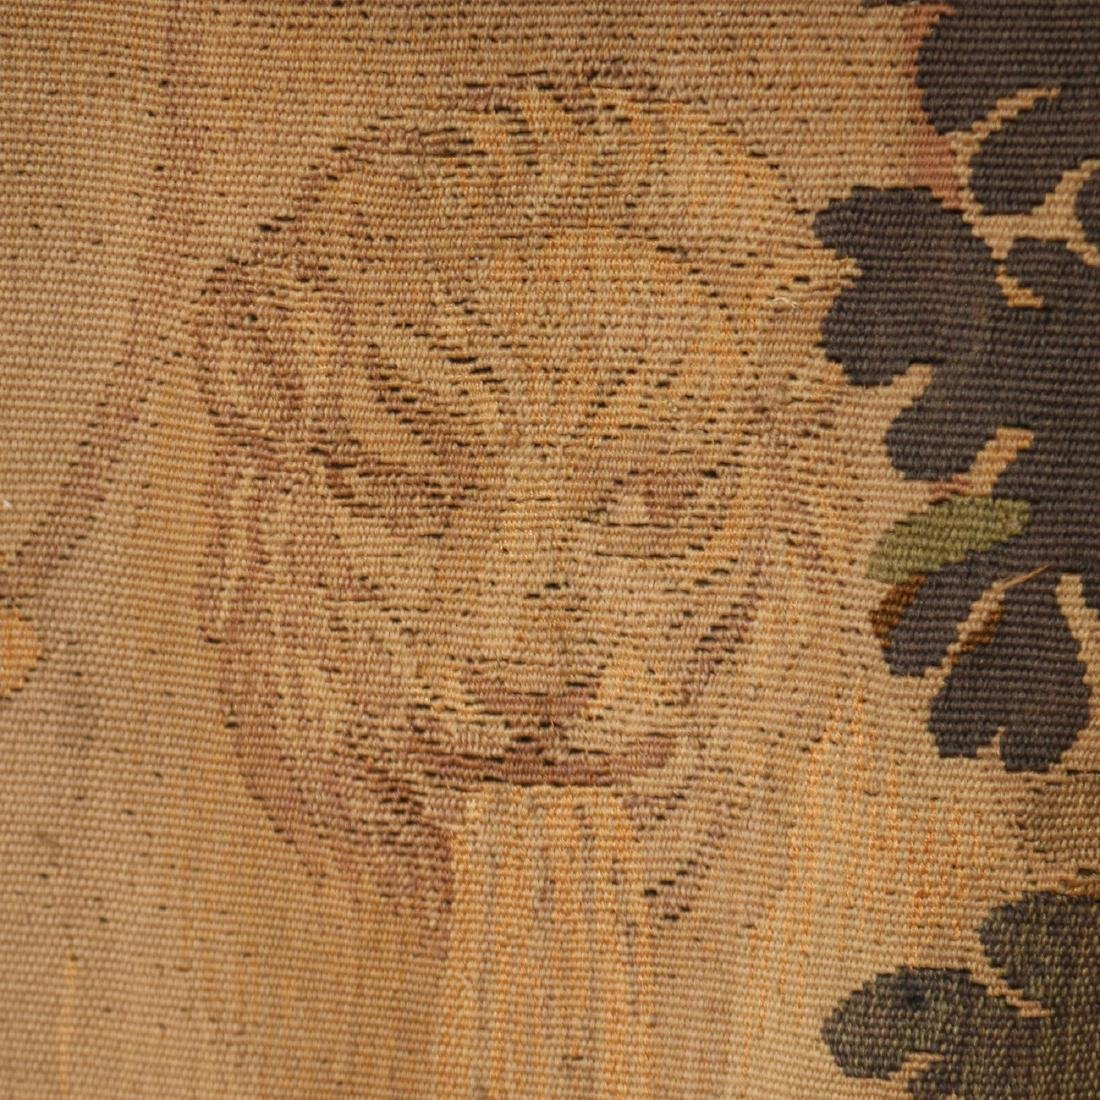 19th C. AUBUSSON TAPESTRY - 6